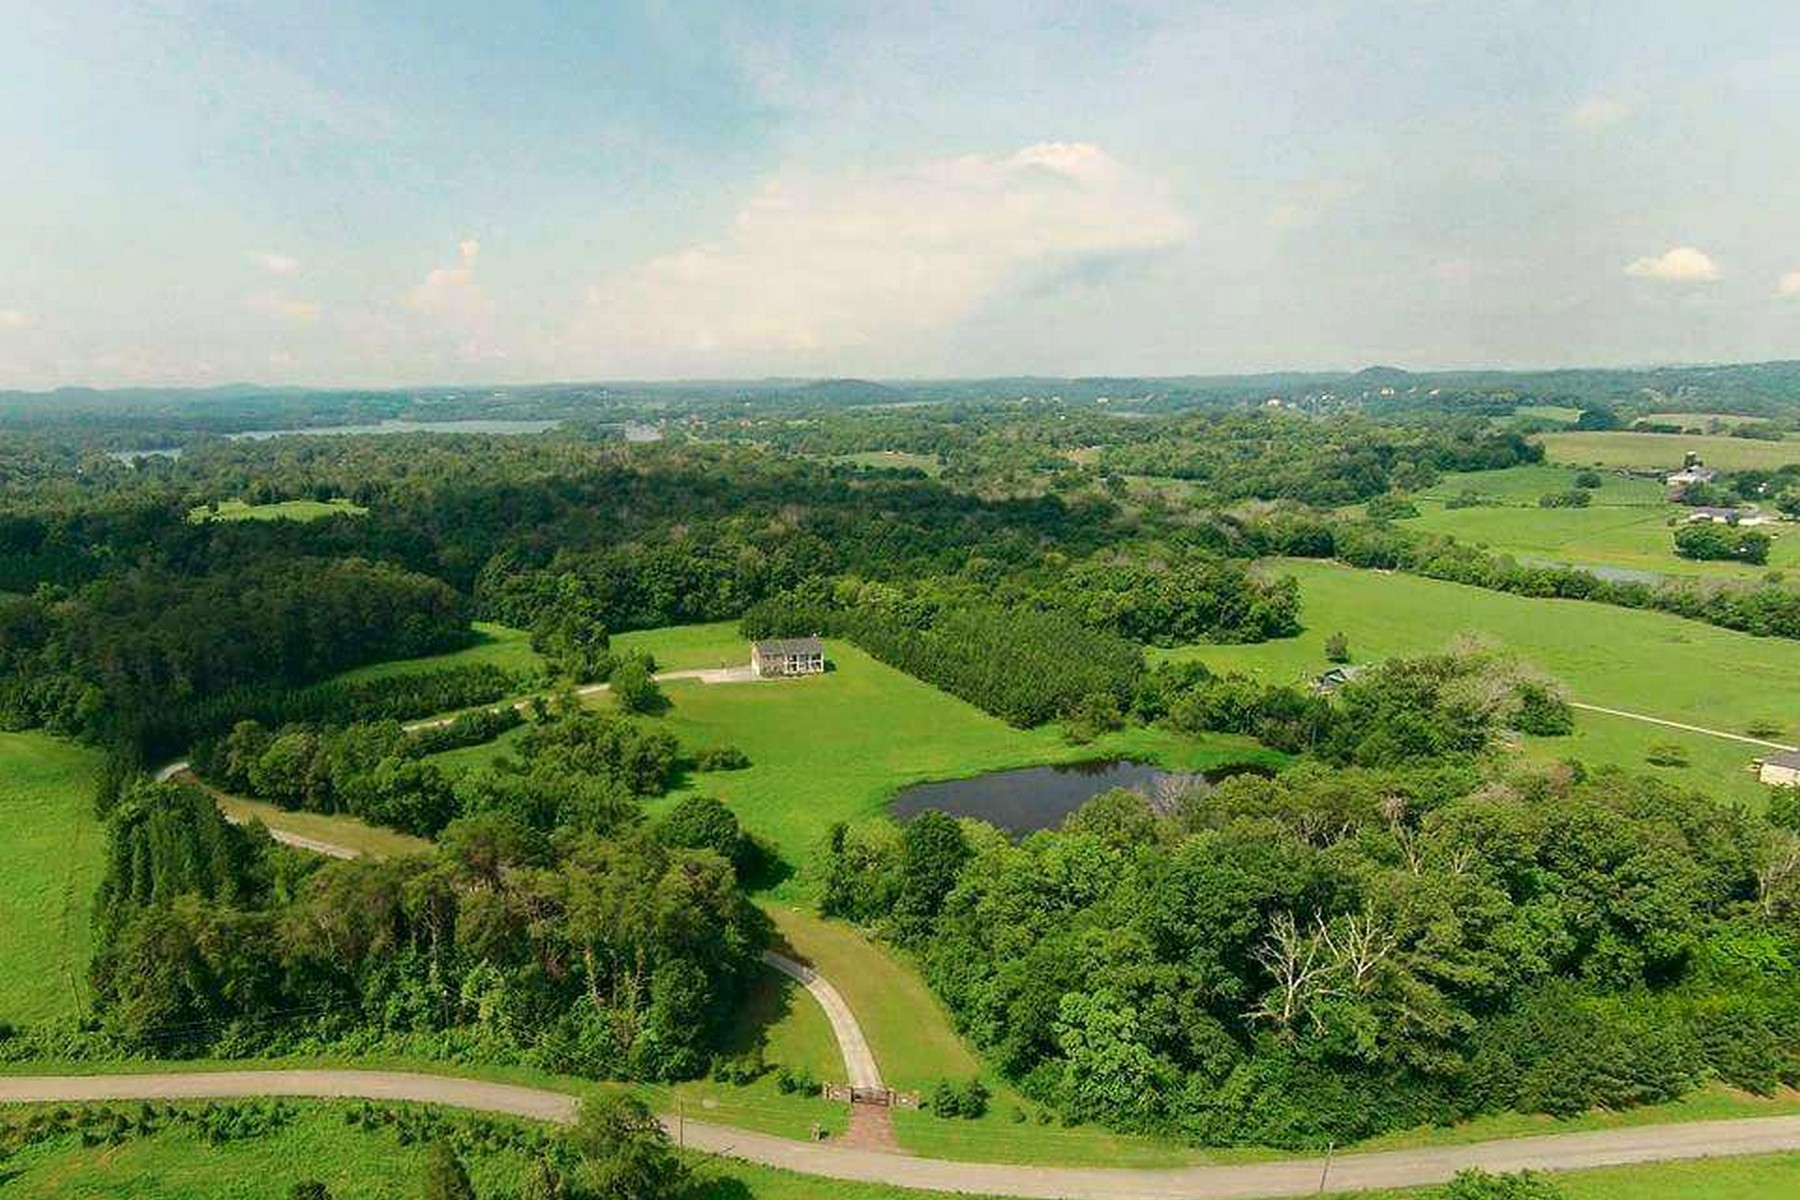 토지 용 매매 에 Gated 32+ Acres For Development 3541 Windy J Farms, Louisville, 테네시 37777 미국